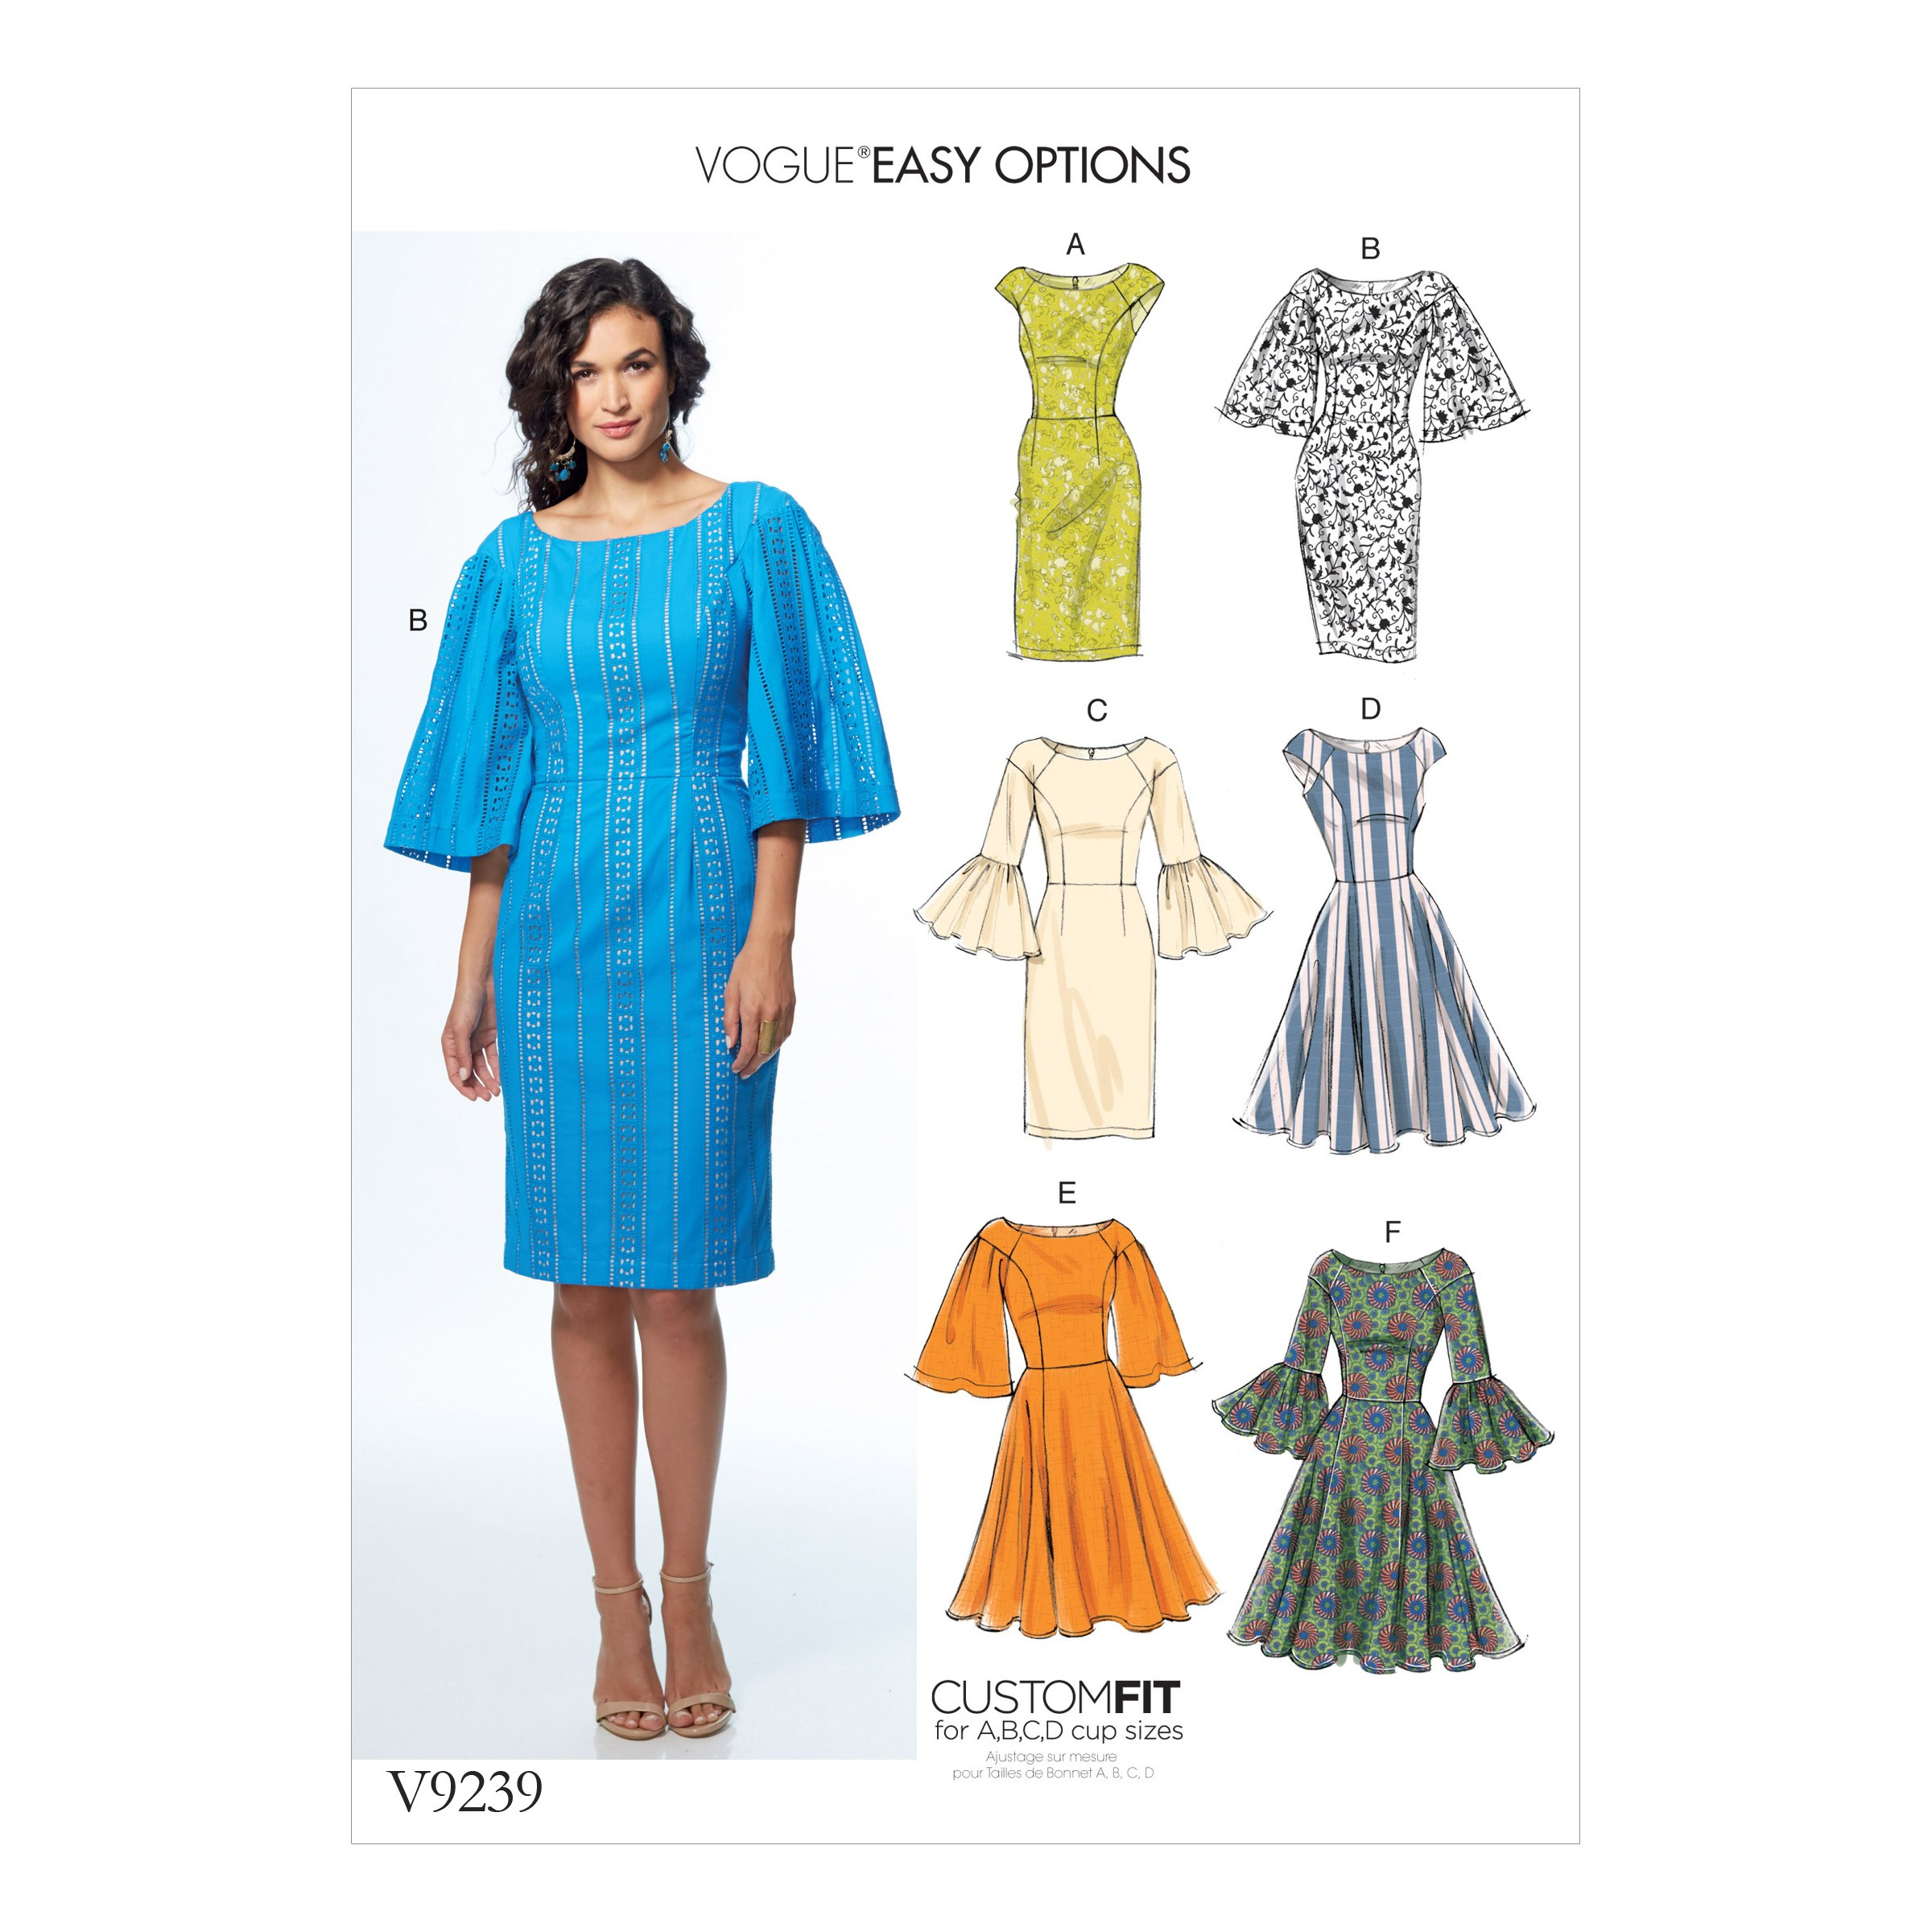 Vogue Sewing Pattern V9239 Women's Princess Seam Dresses With Sleeve & Skirt